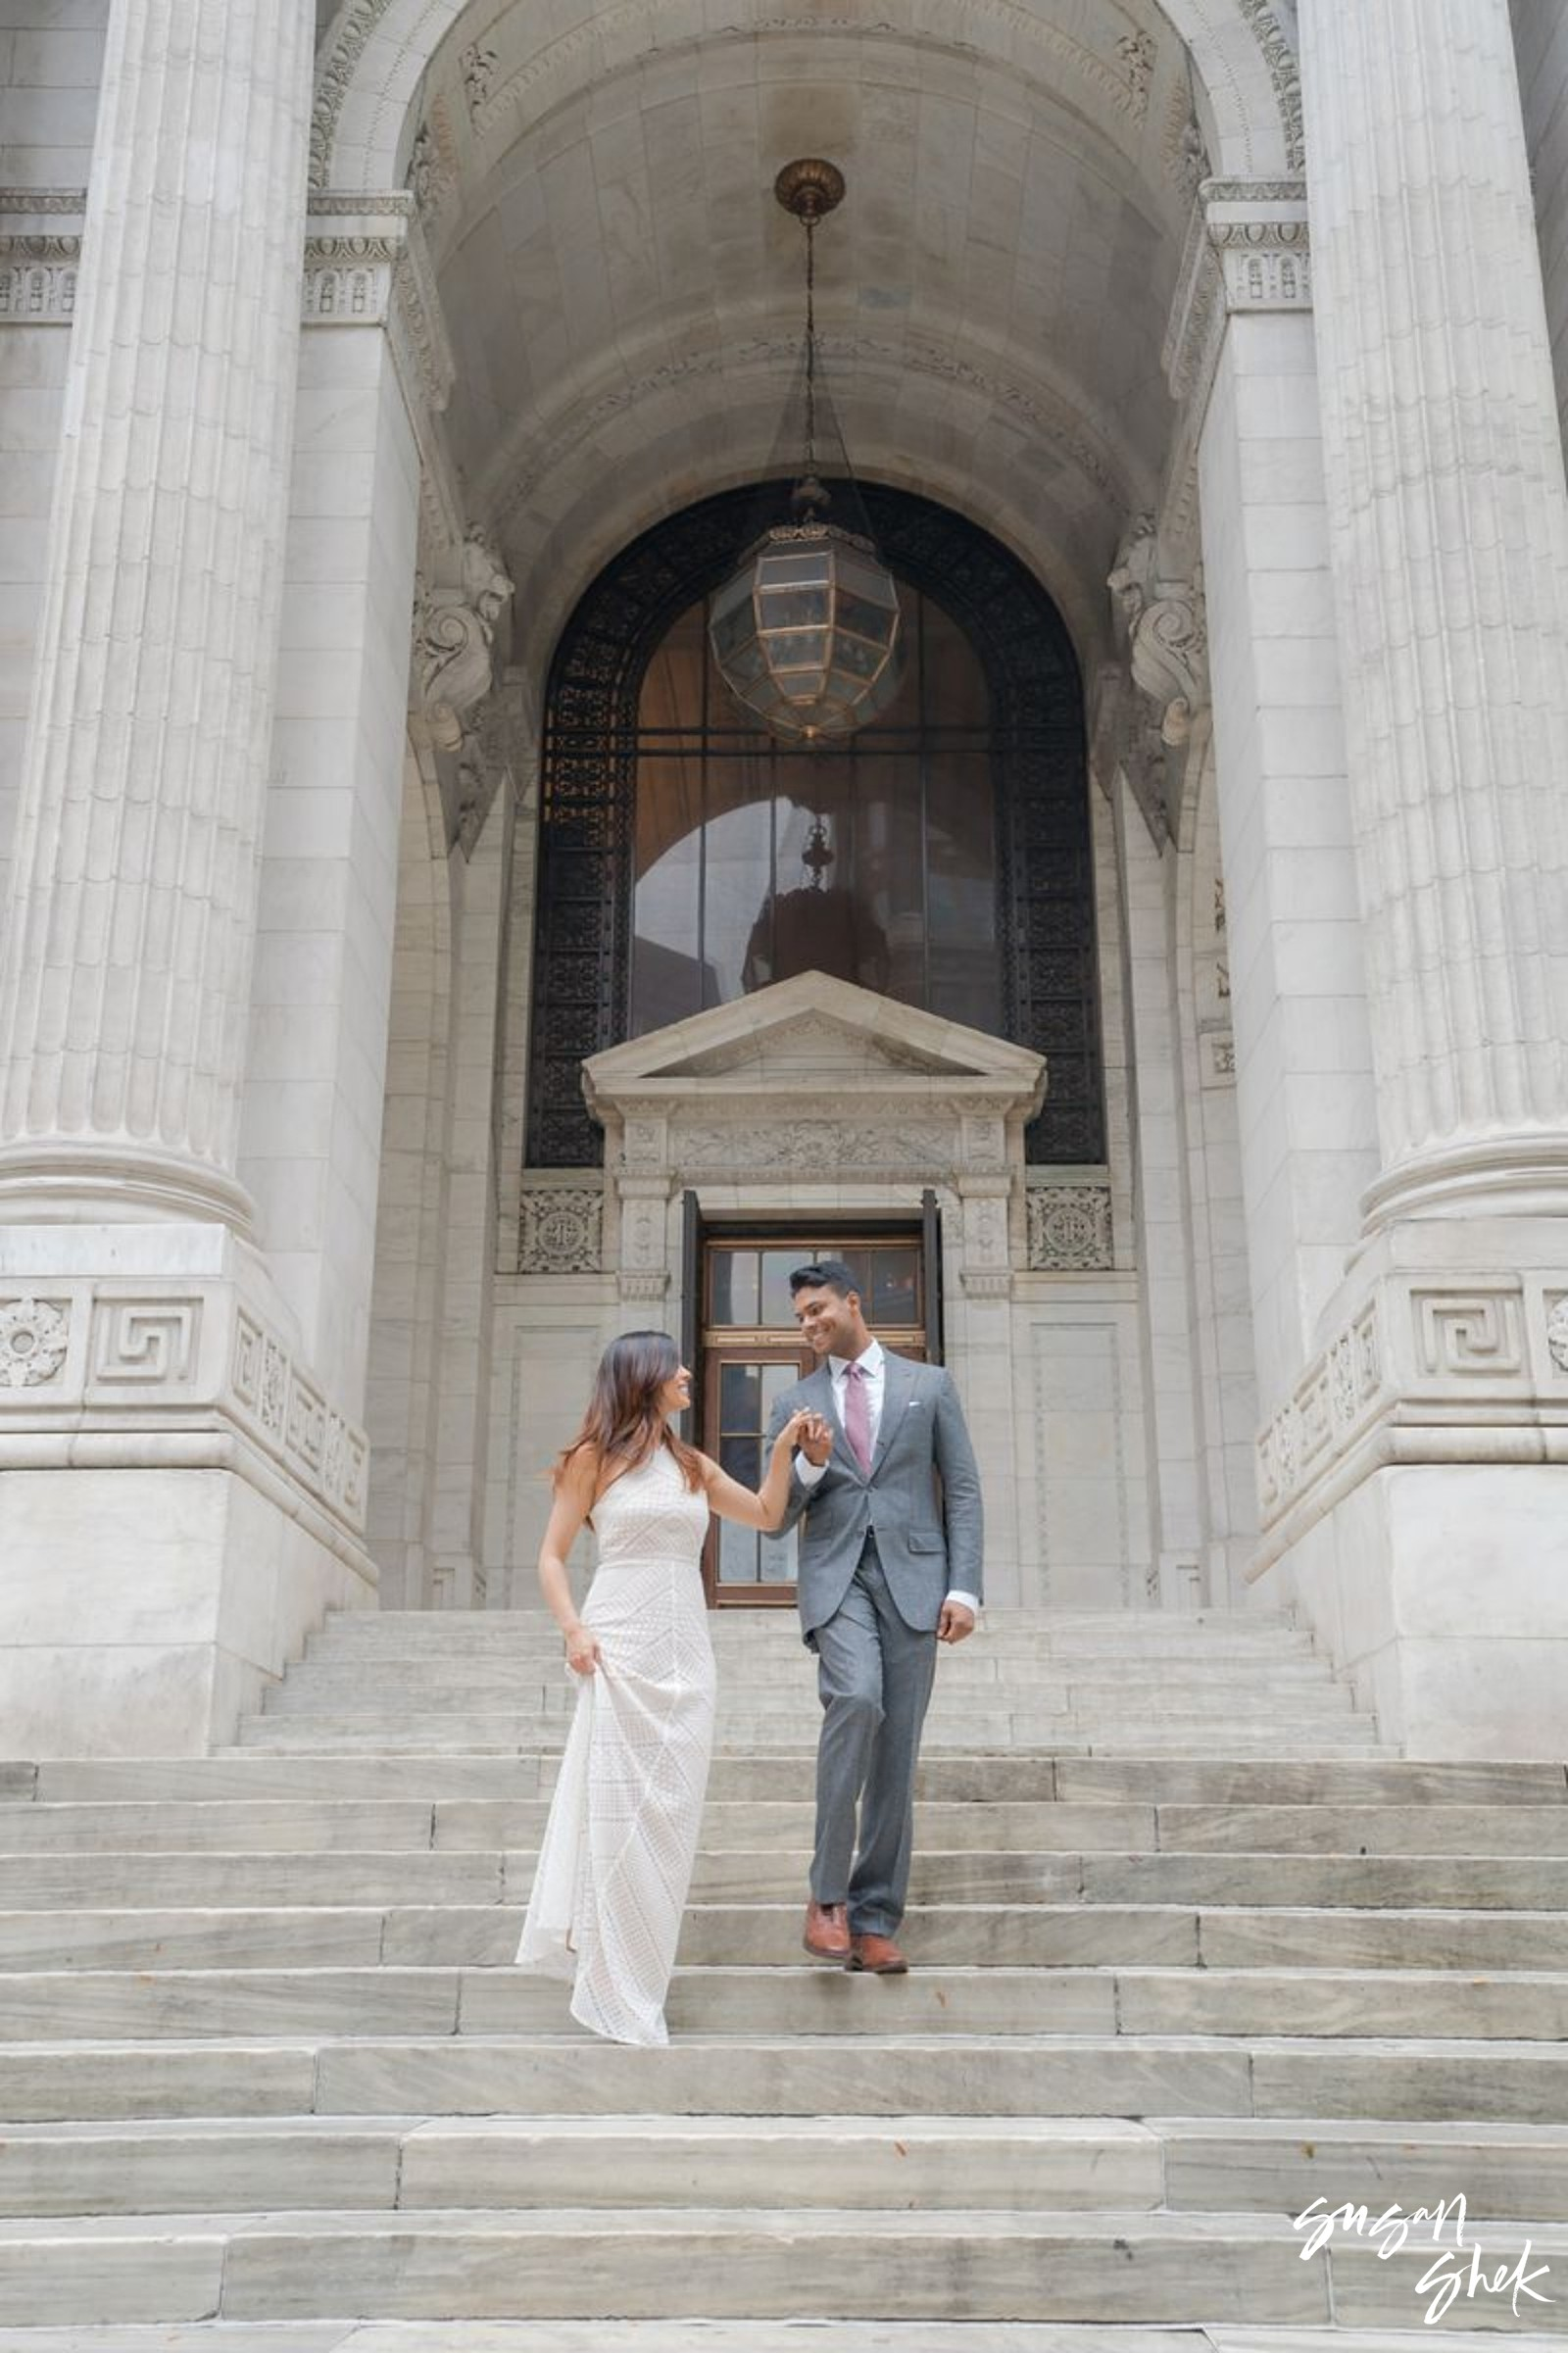 NY Public Library Engagement Shoot, NYC Engagement Photographer, Engagement Session, Engagement Photography, Engagement Photographer, NYC Wedding Photographer